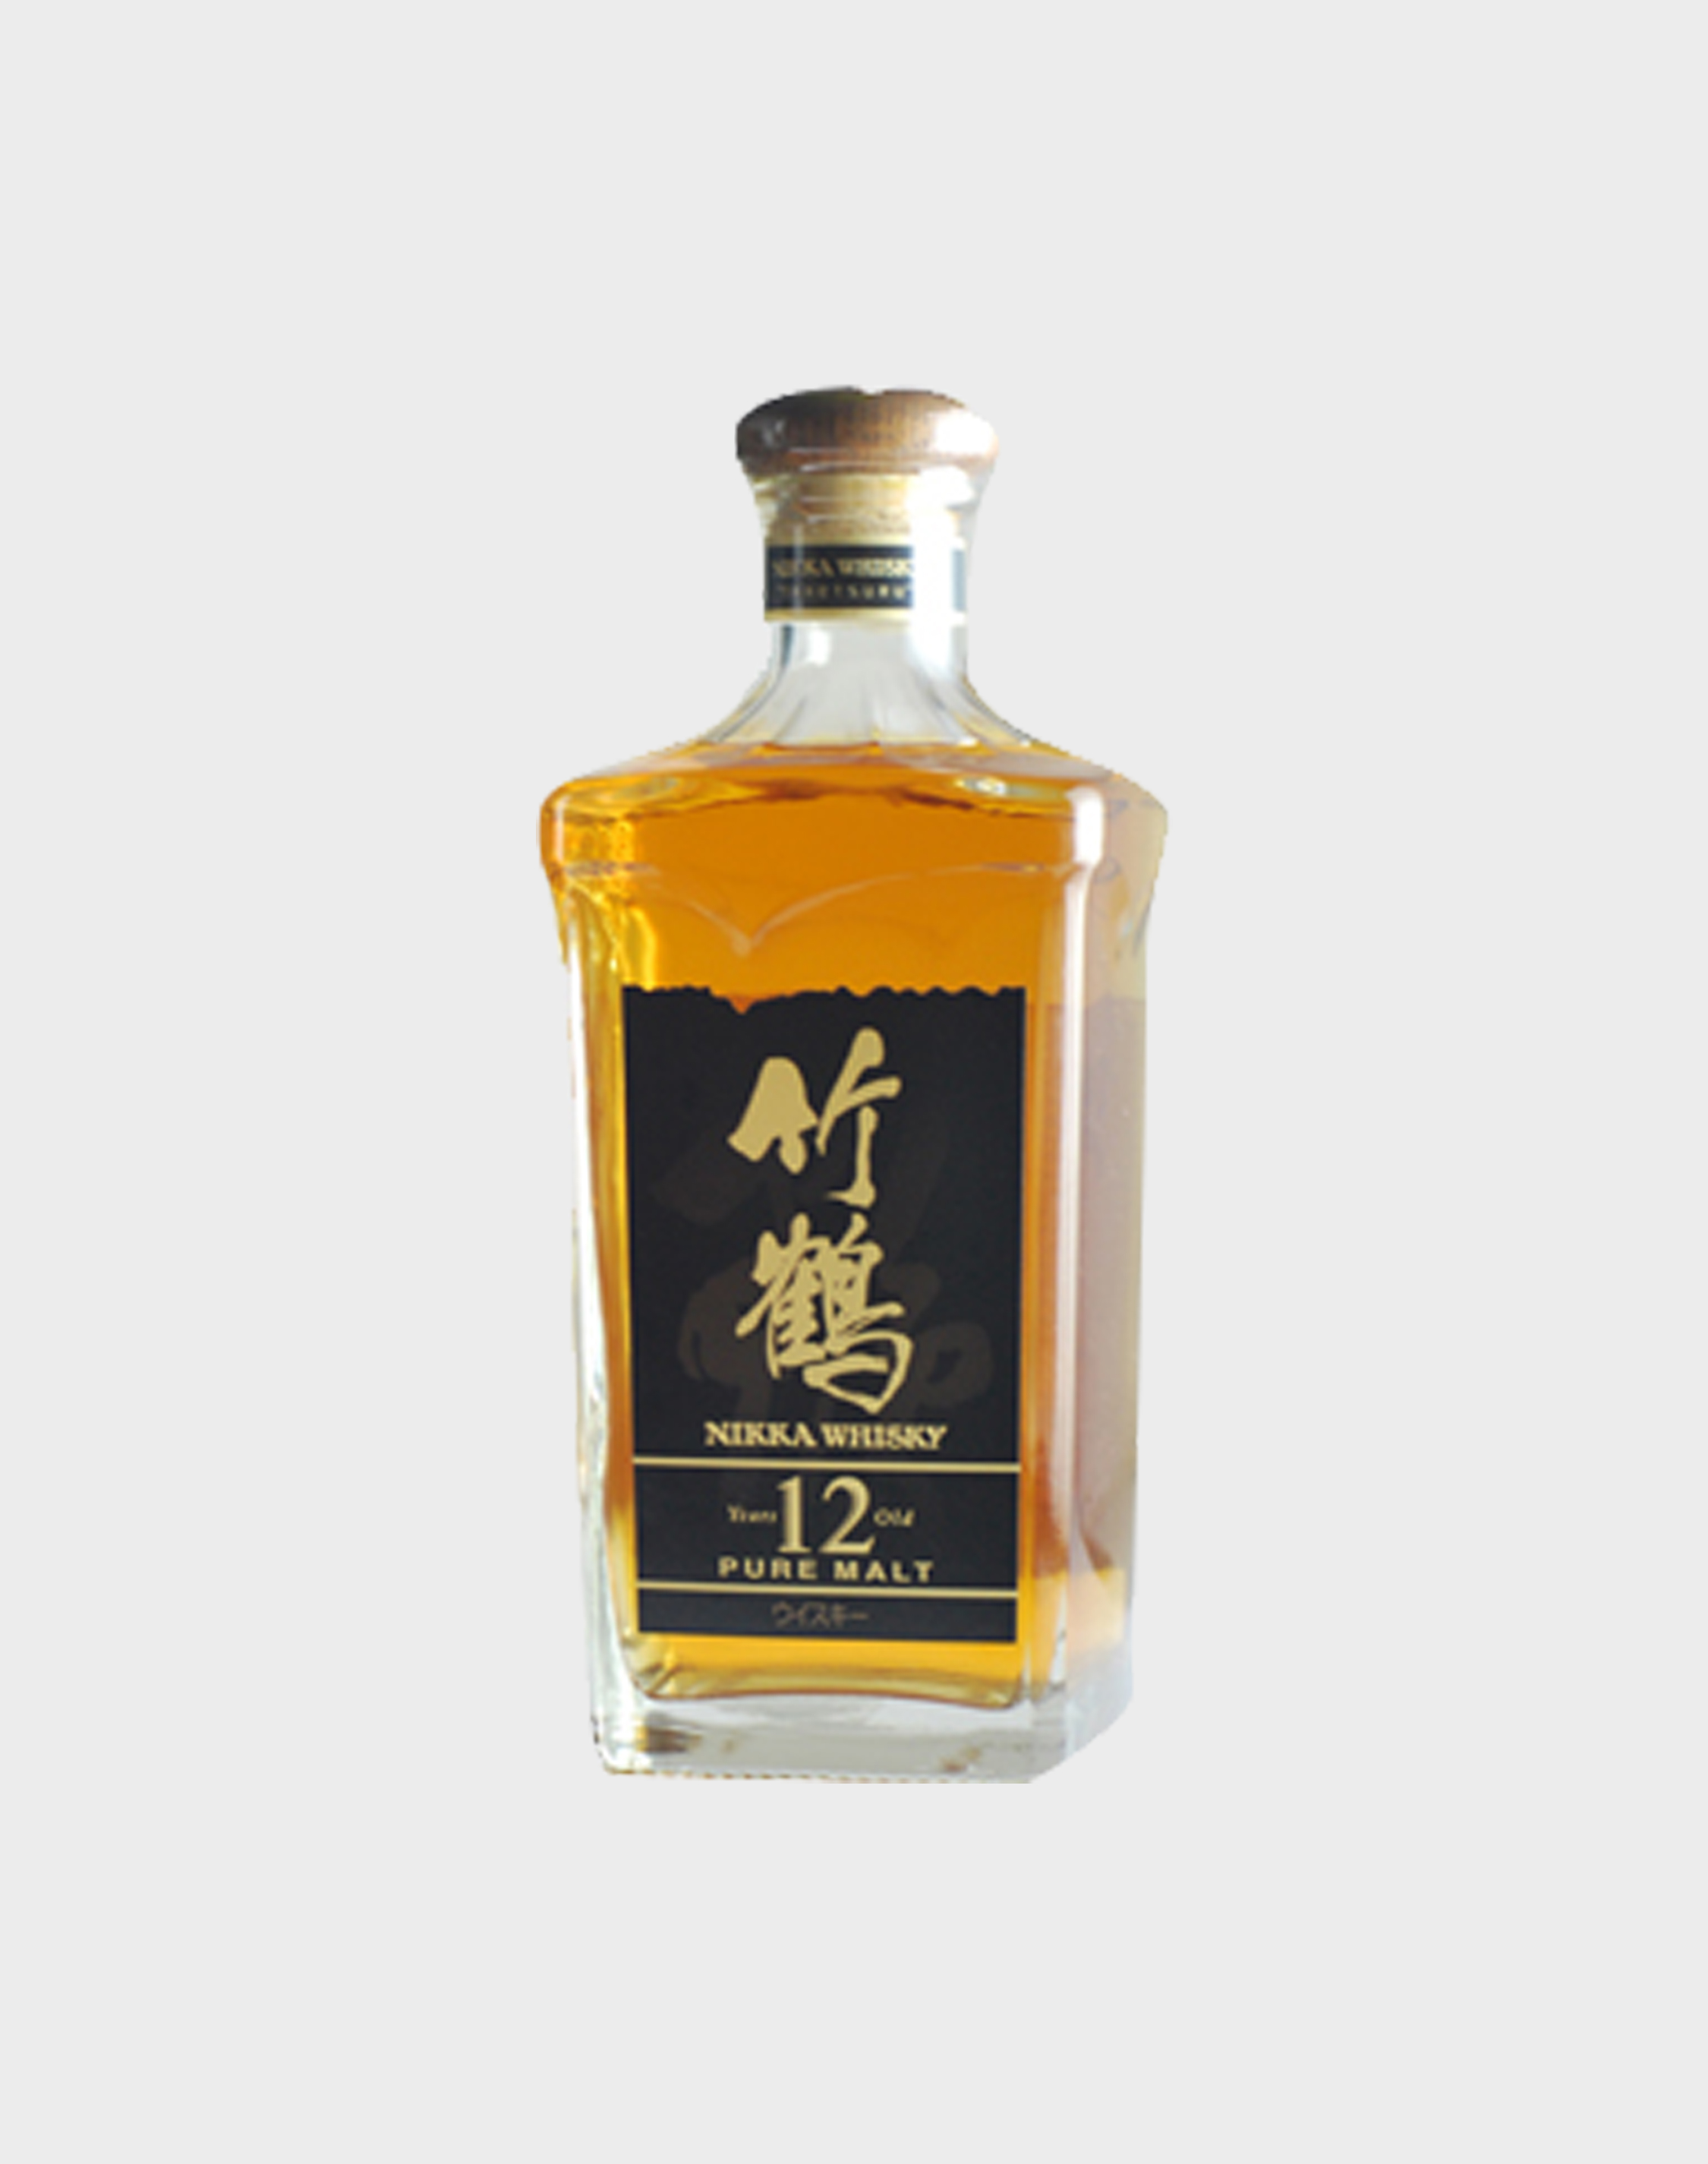 Nikka Whisky Pure Malt 12 Year Old Square Bottle (No Box)